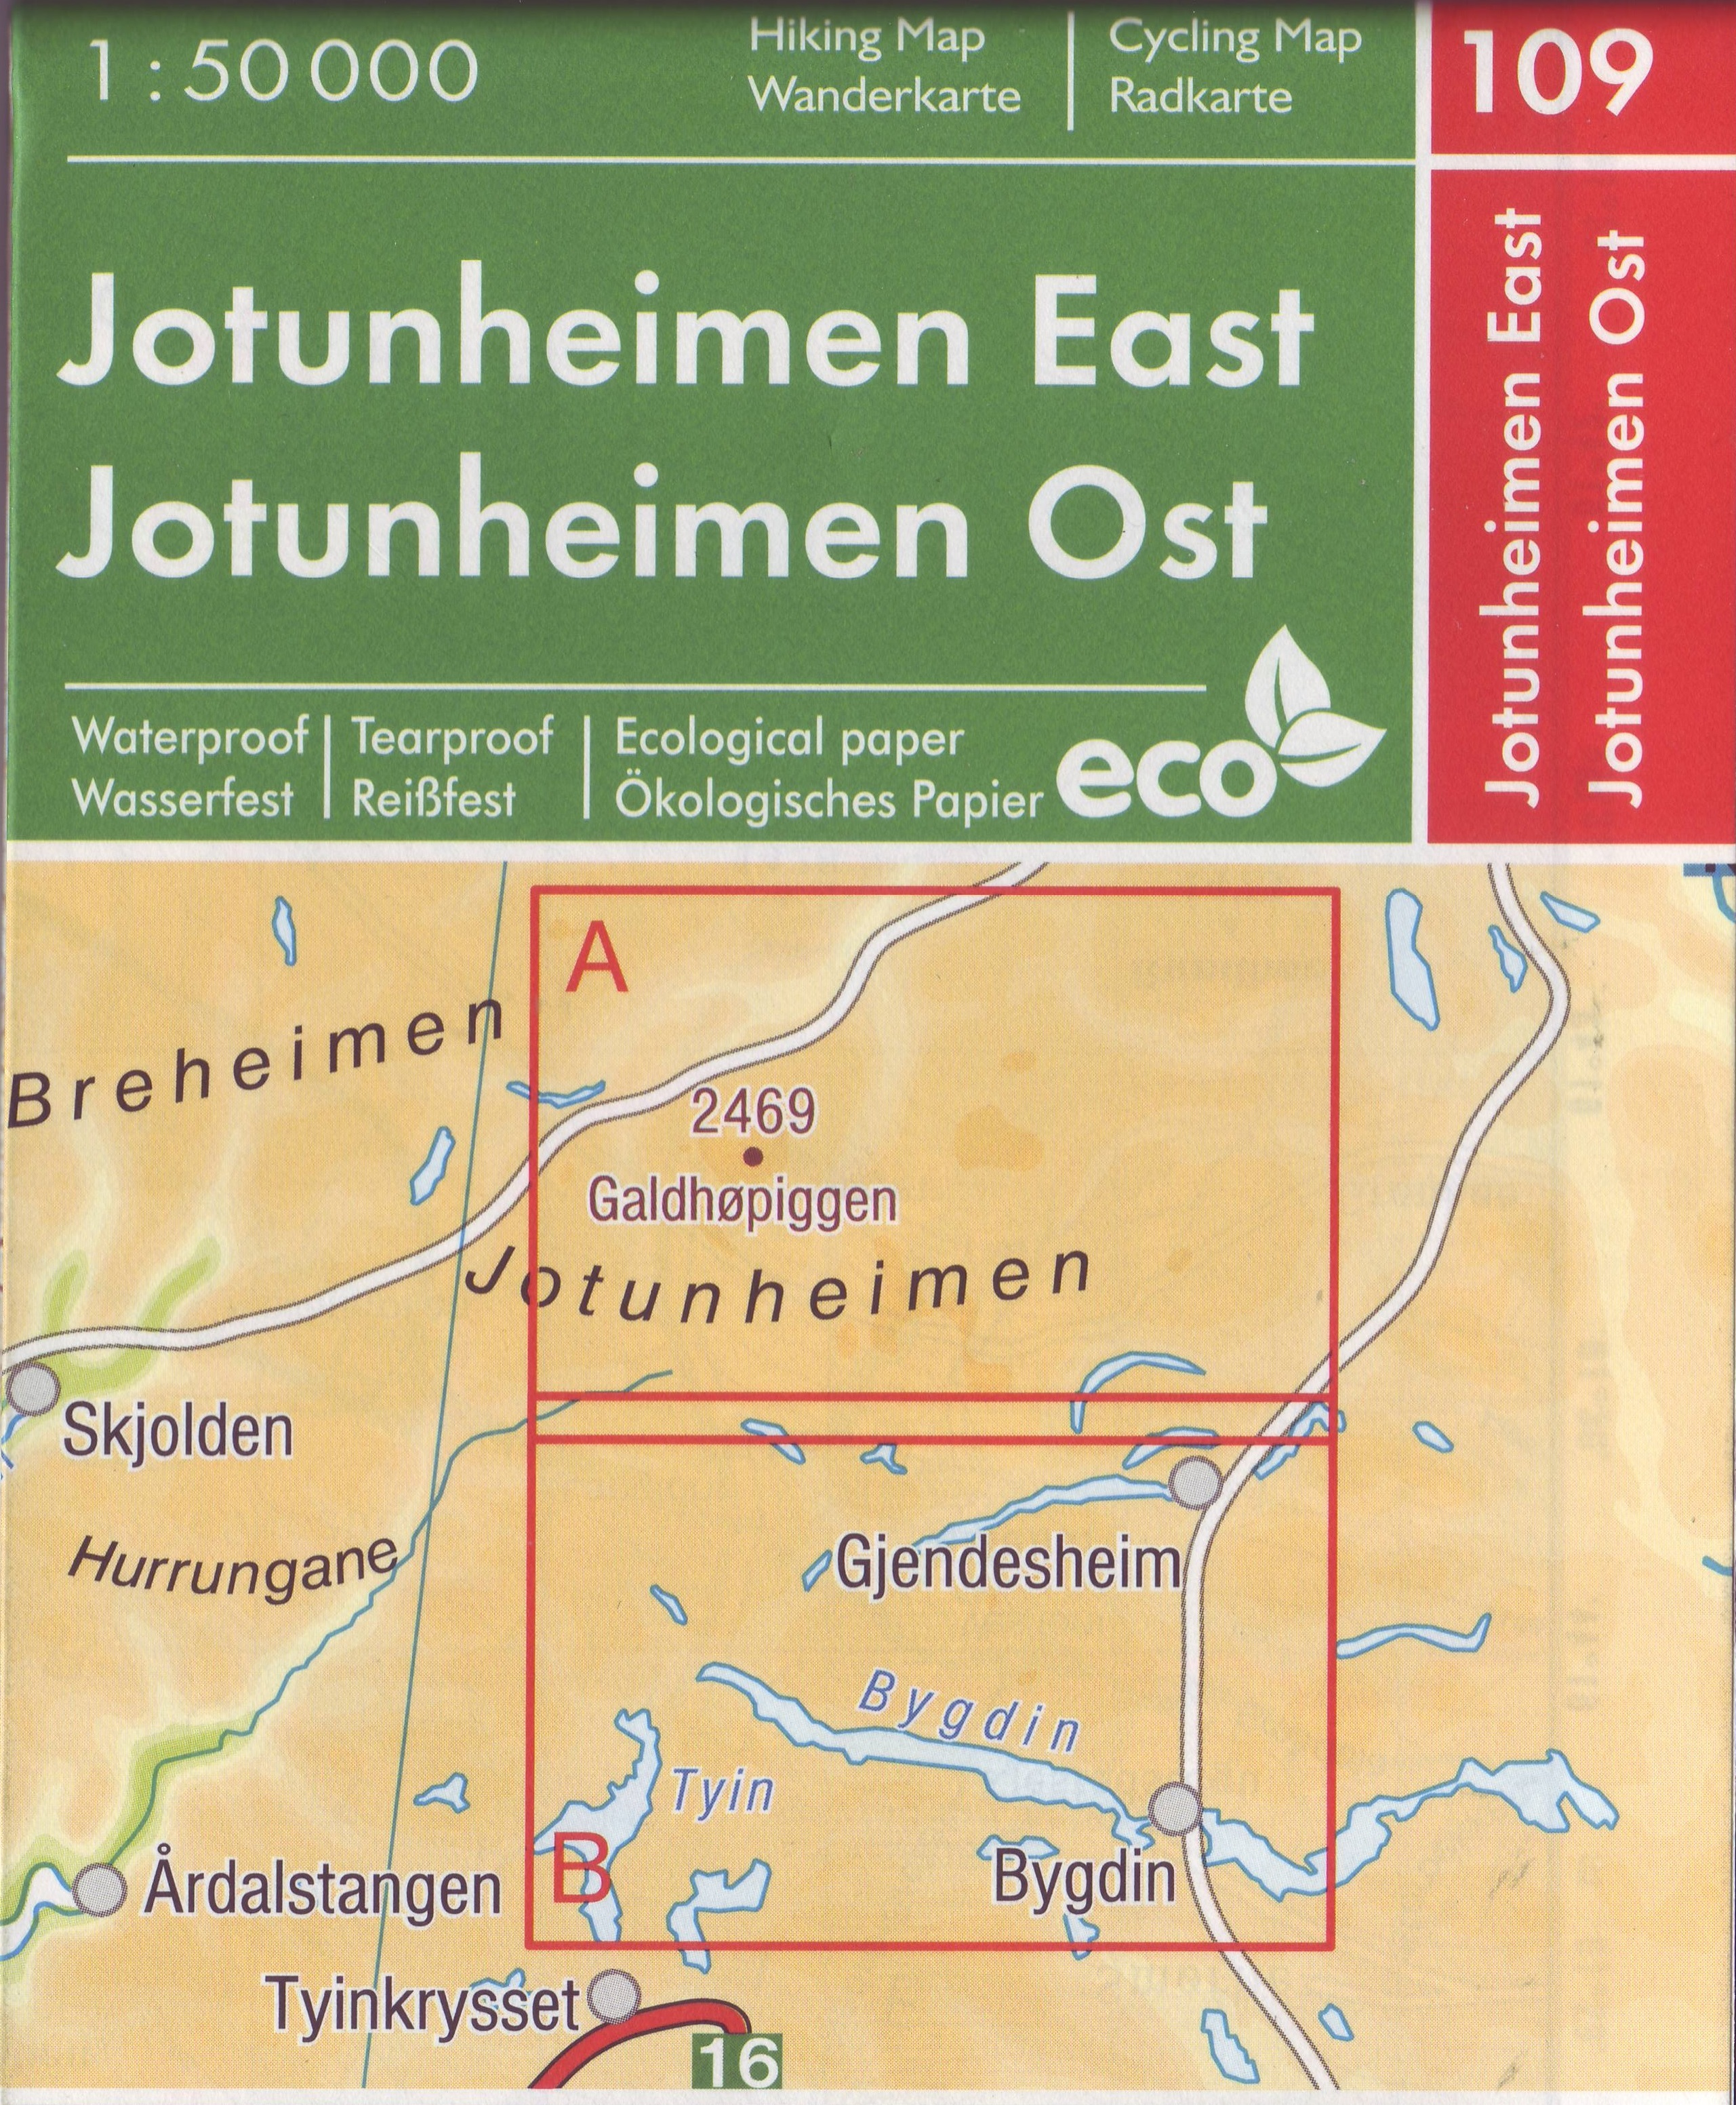 Norwegian Walking Maps and Walking Guides Norway to Buy ... on finland map, brazil map, ireland map, poland map, russia map, iceland map, france map, norwegian map, turkey map, belgium map, united kingdom map, global map, scandinavia map, czech republic map, portugal map, switzerland map, austria map, greece map, europe map, oslo map, scotland map, uk map, north sea map, germany map, spain map, britain map, italy map, denmark map, sweden map, england map, hungary map, cyprus map,